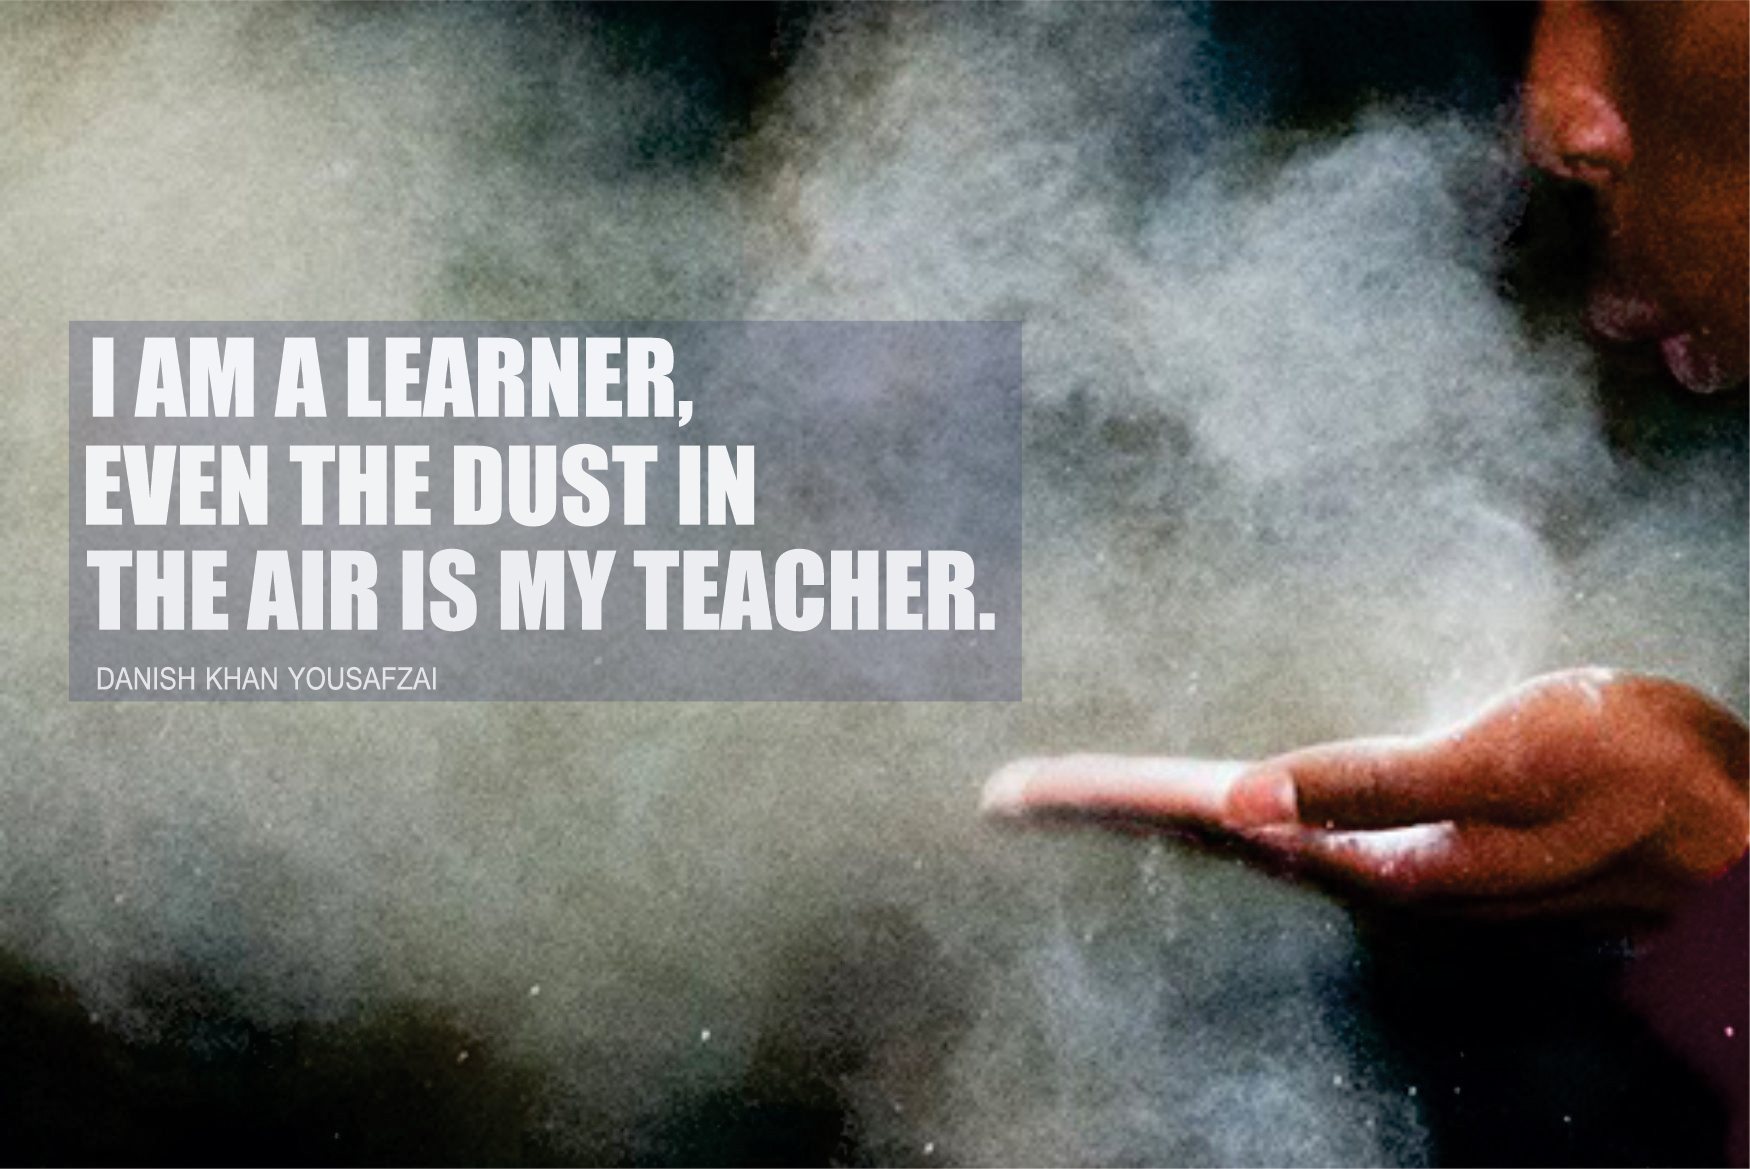 I am la earner event the dust in the air is my teacher.